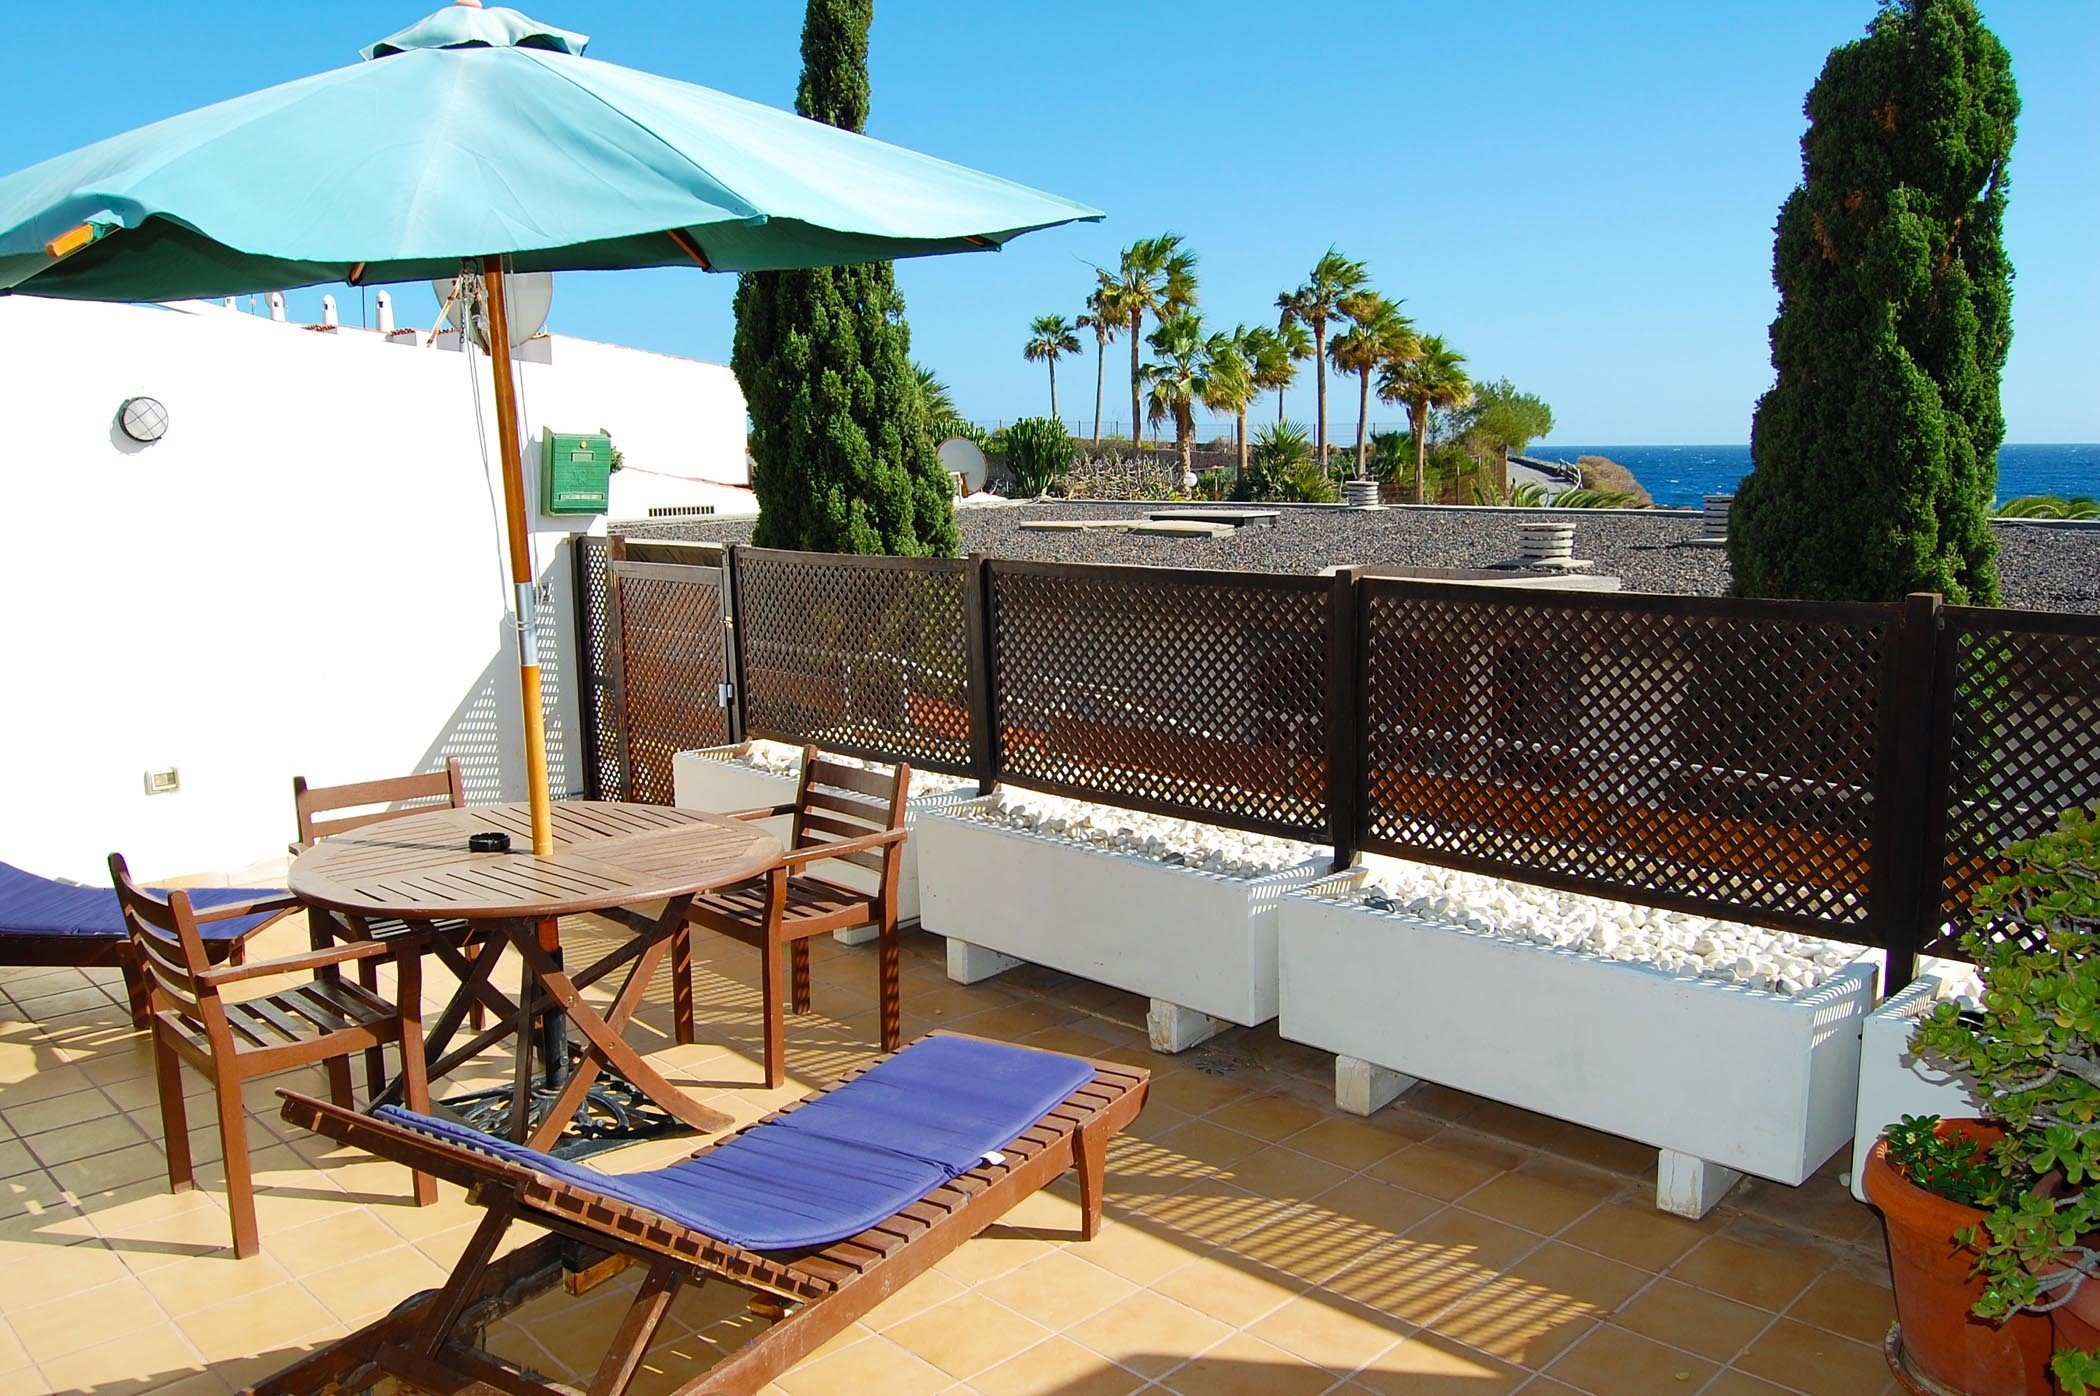 Apartment to rent in San Miguel de Abona Tenerife with shared